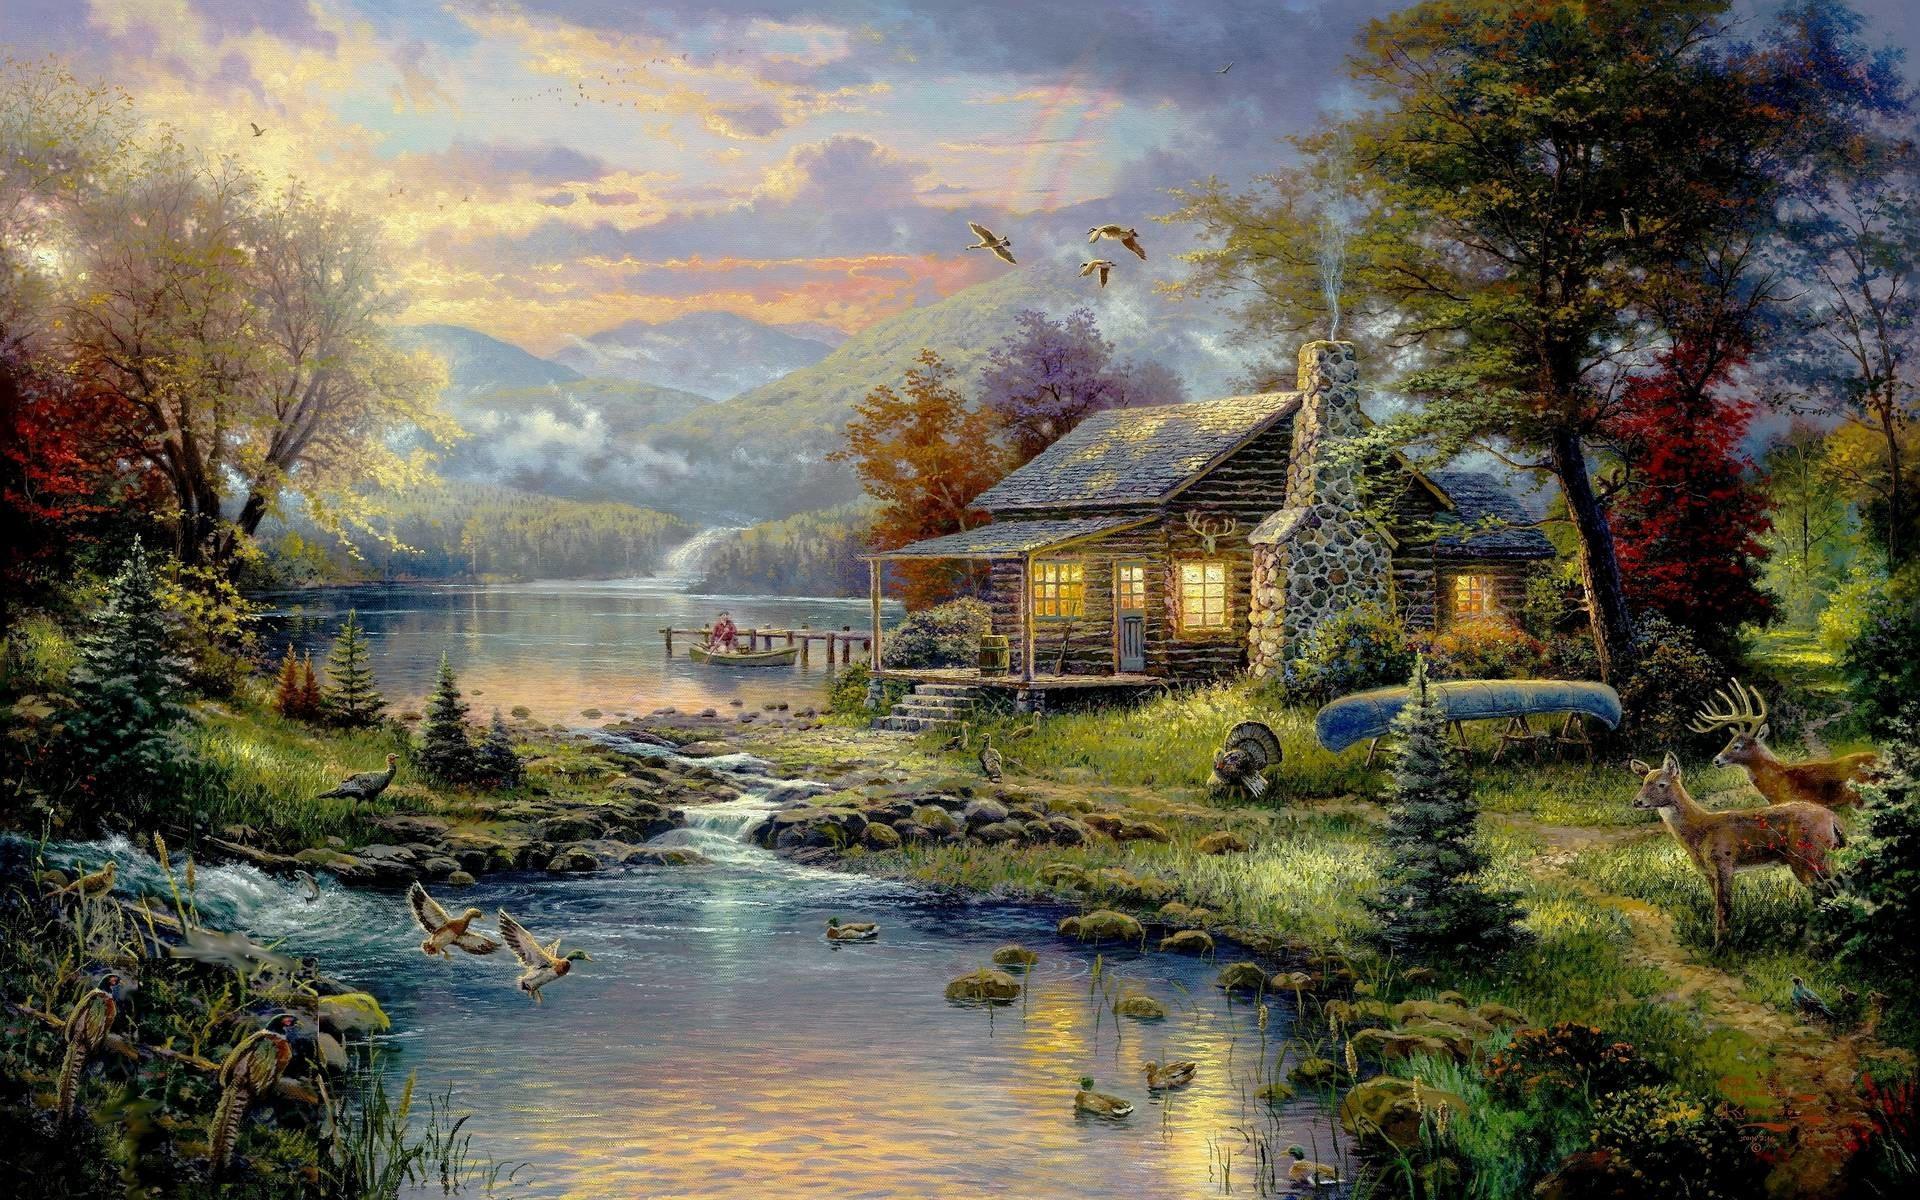 1920x1200 Thomas Kinkade Wallpaper | HD Wallpapers Pictures